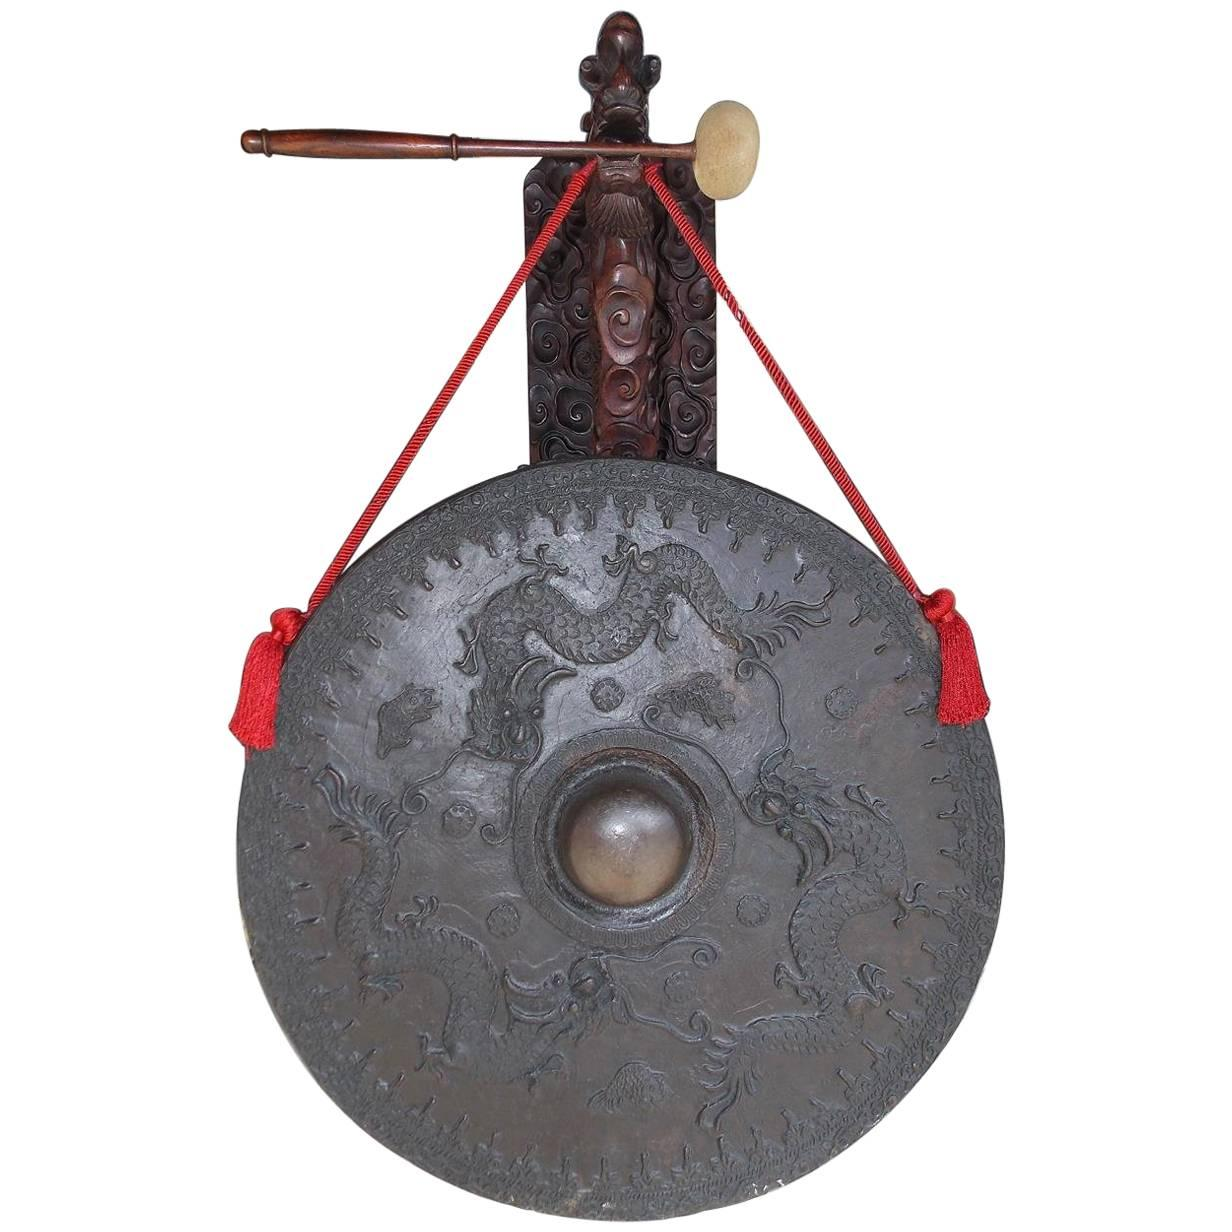 Chinese King Wood and Bronze Wall-Mounted Temple Gong, 19th Century